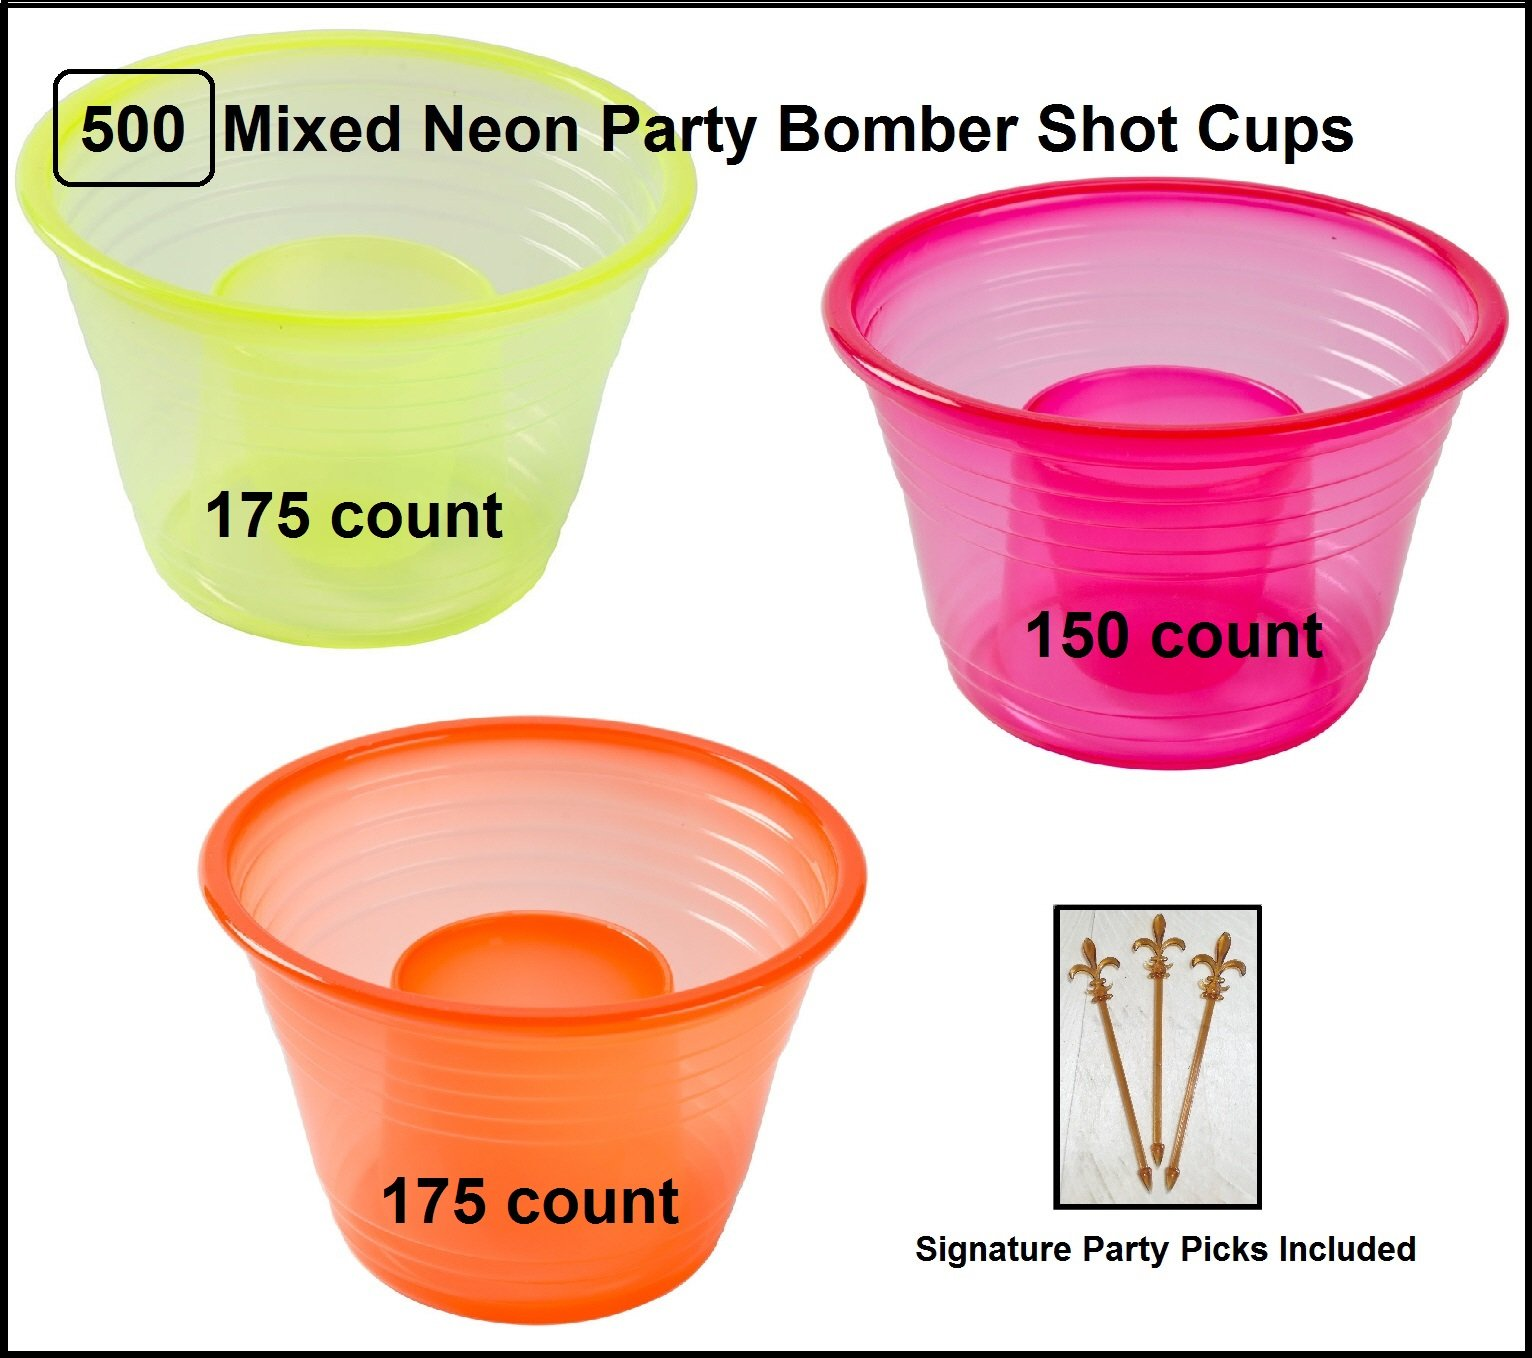 500 count Fineline Mixed Neon Blaster Bomb Shot Cups w/ Signature Party Picks by Quenchers